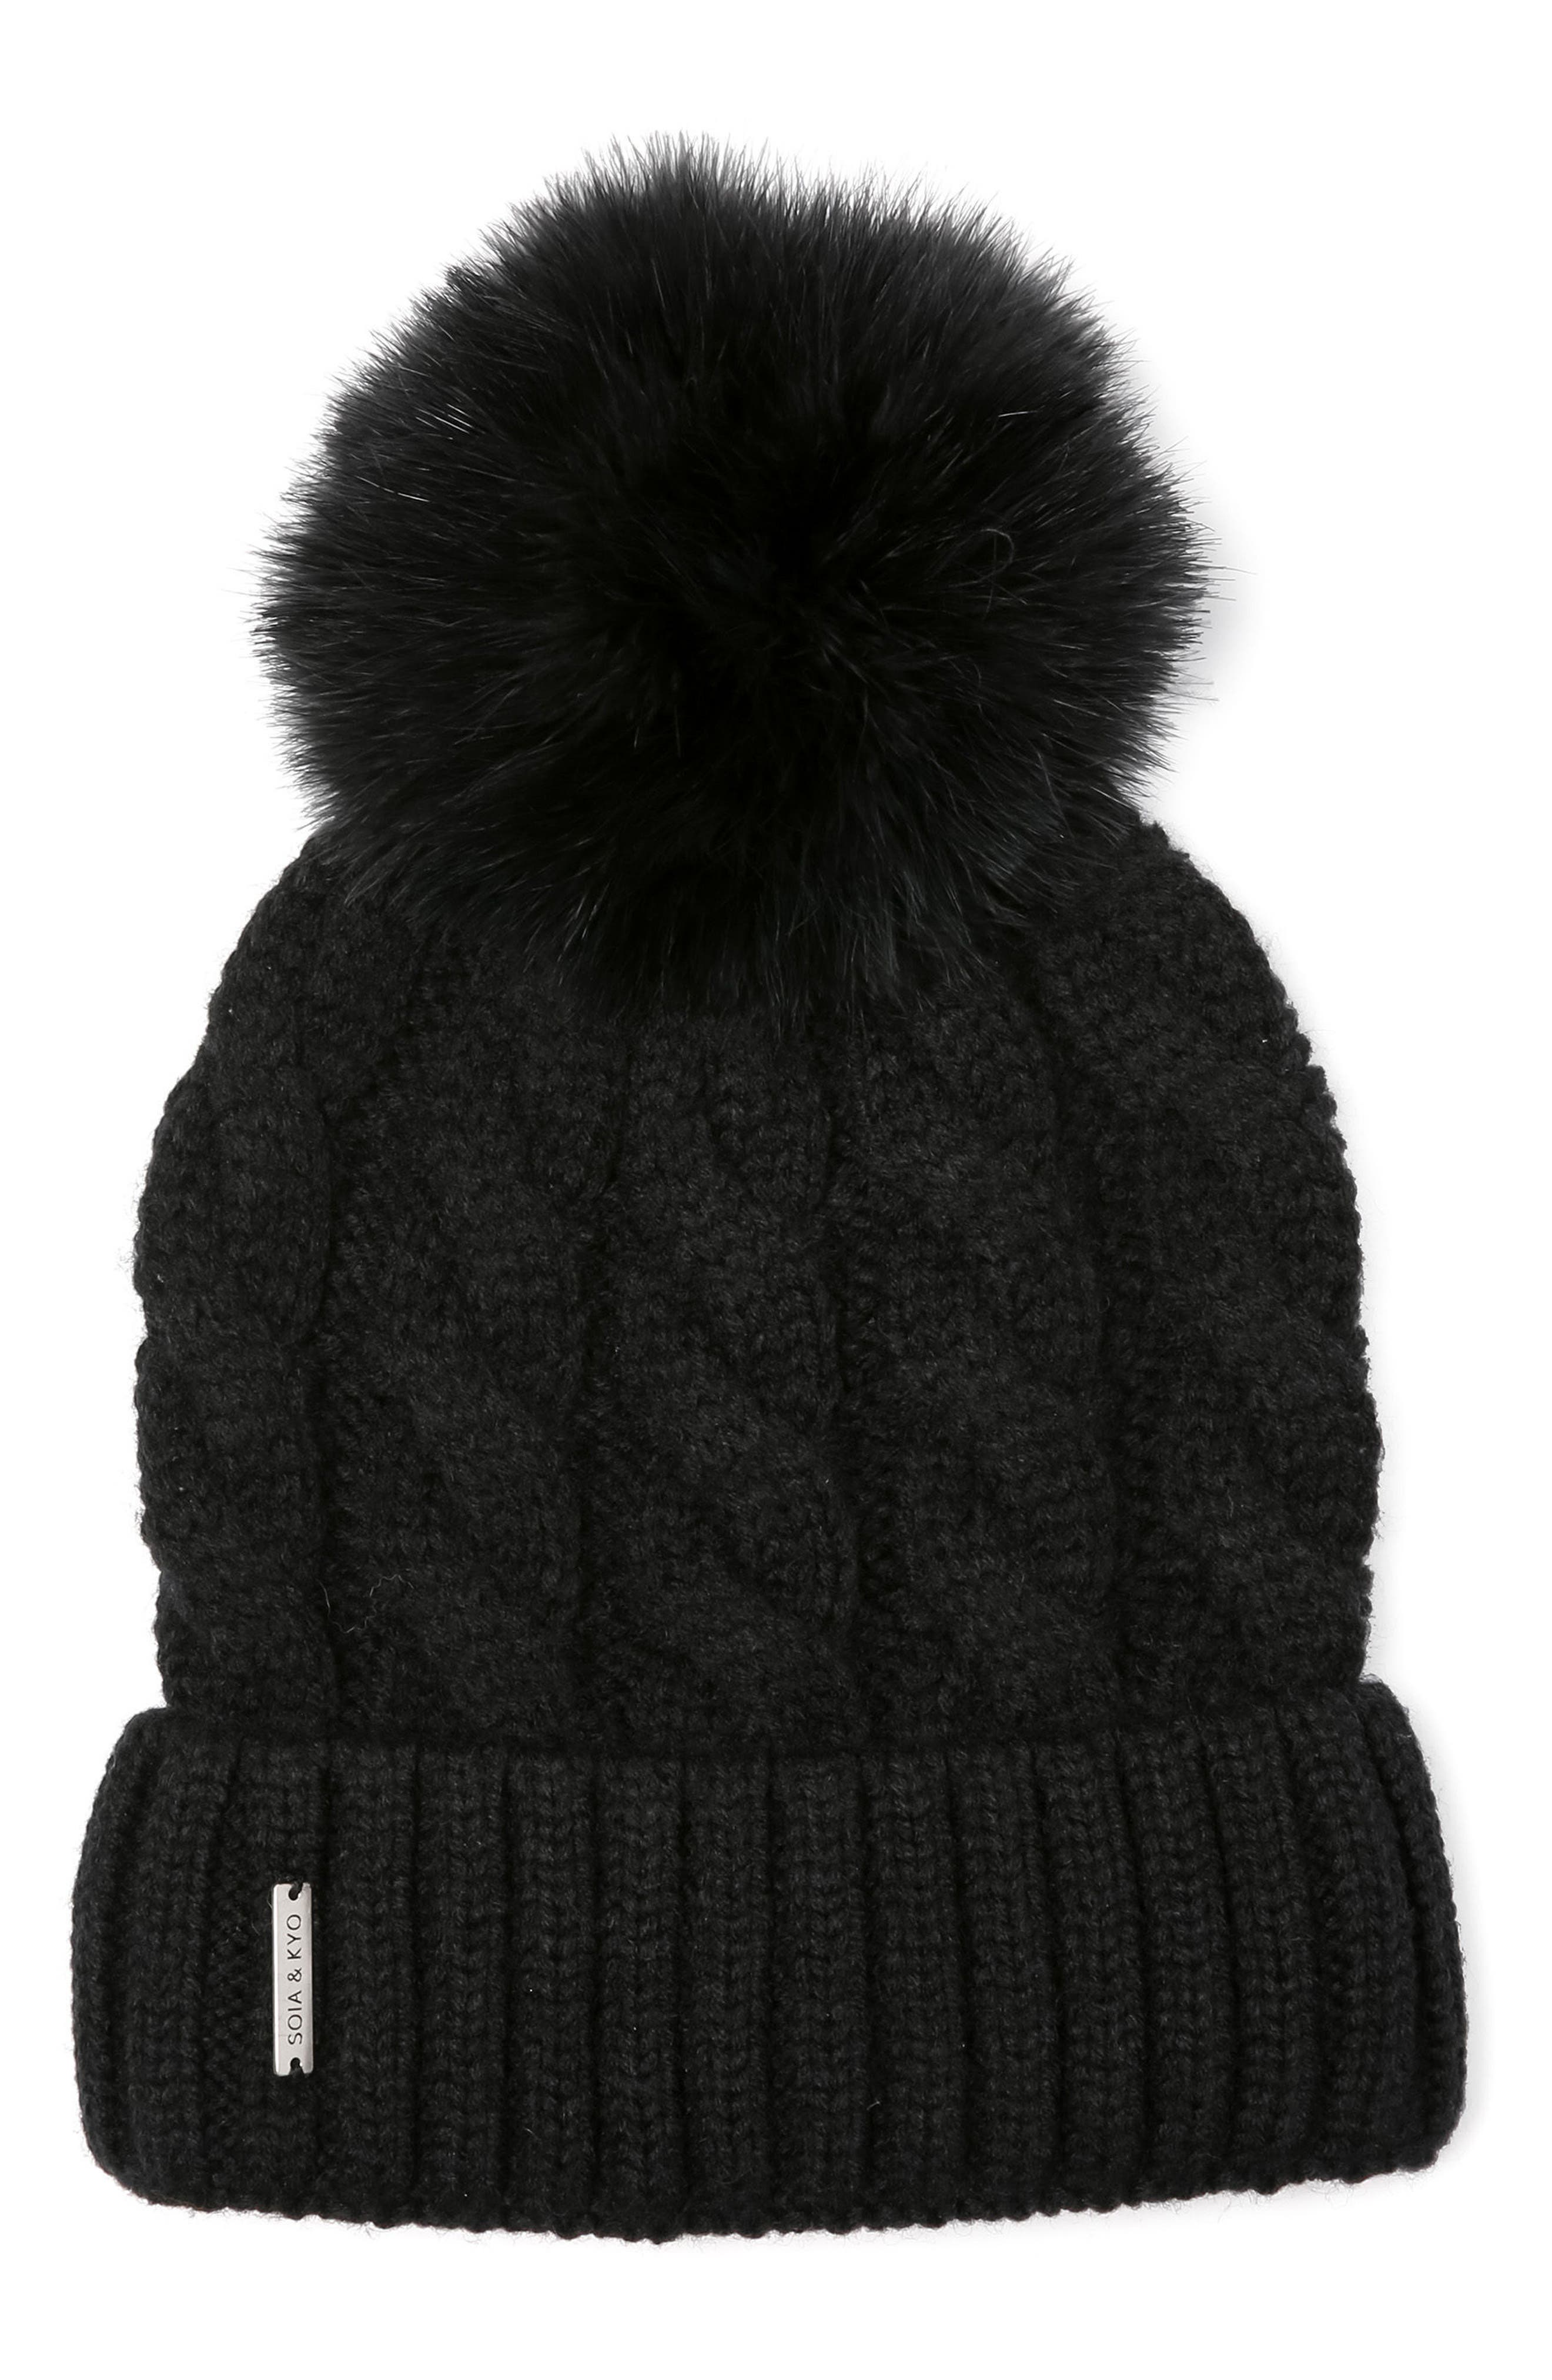 Soia & Kyo Cable Knit Beanie with Removable Feather Pompom